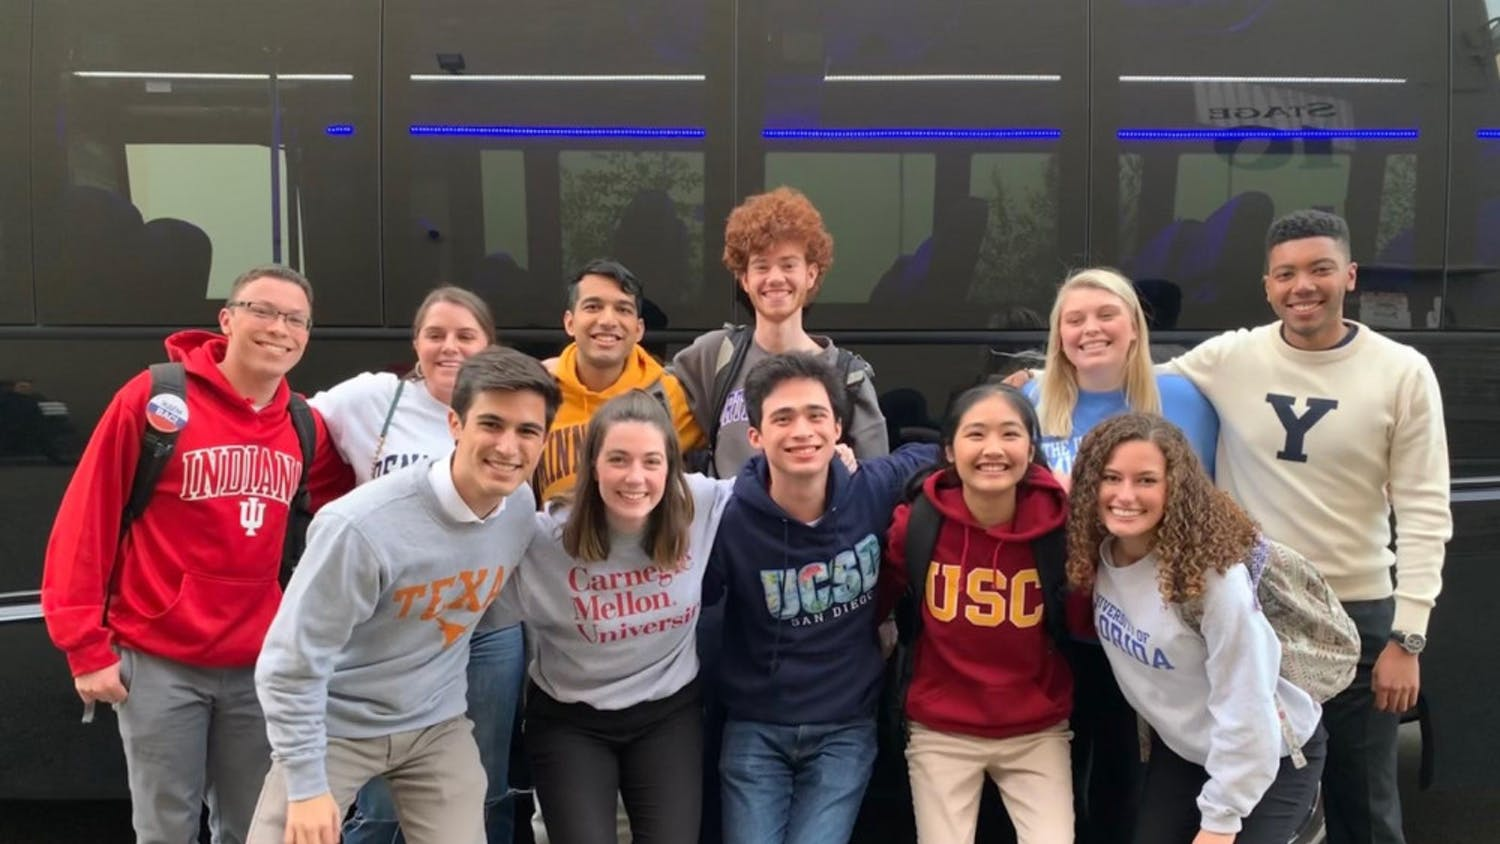 Kayla Kalhor is on the bottom right with the rest of the contestants for Jeopardy! College Championship.